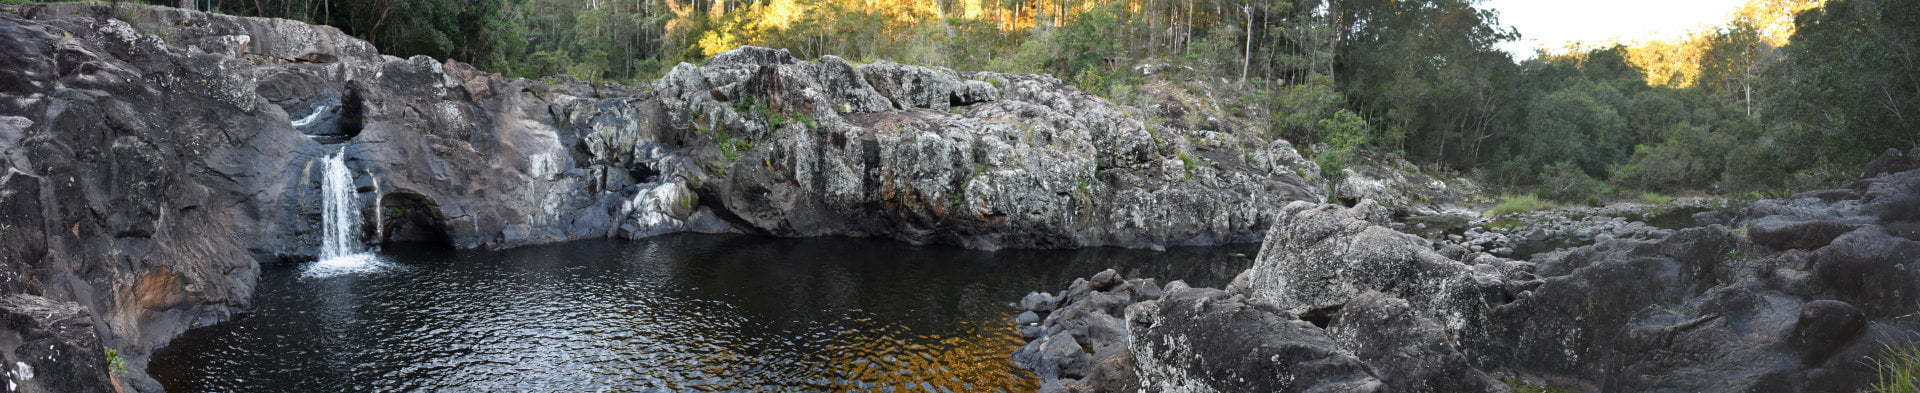 Panorama view of the waterfall and waterhole at Wappa Falls in Yandina